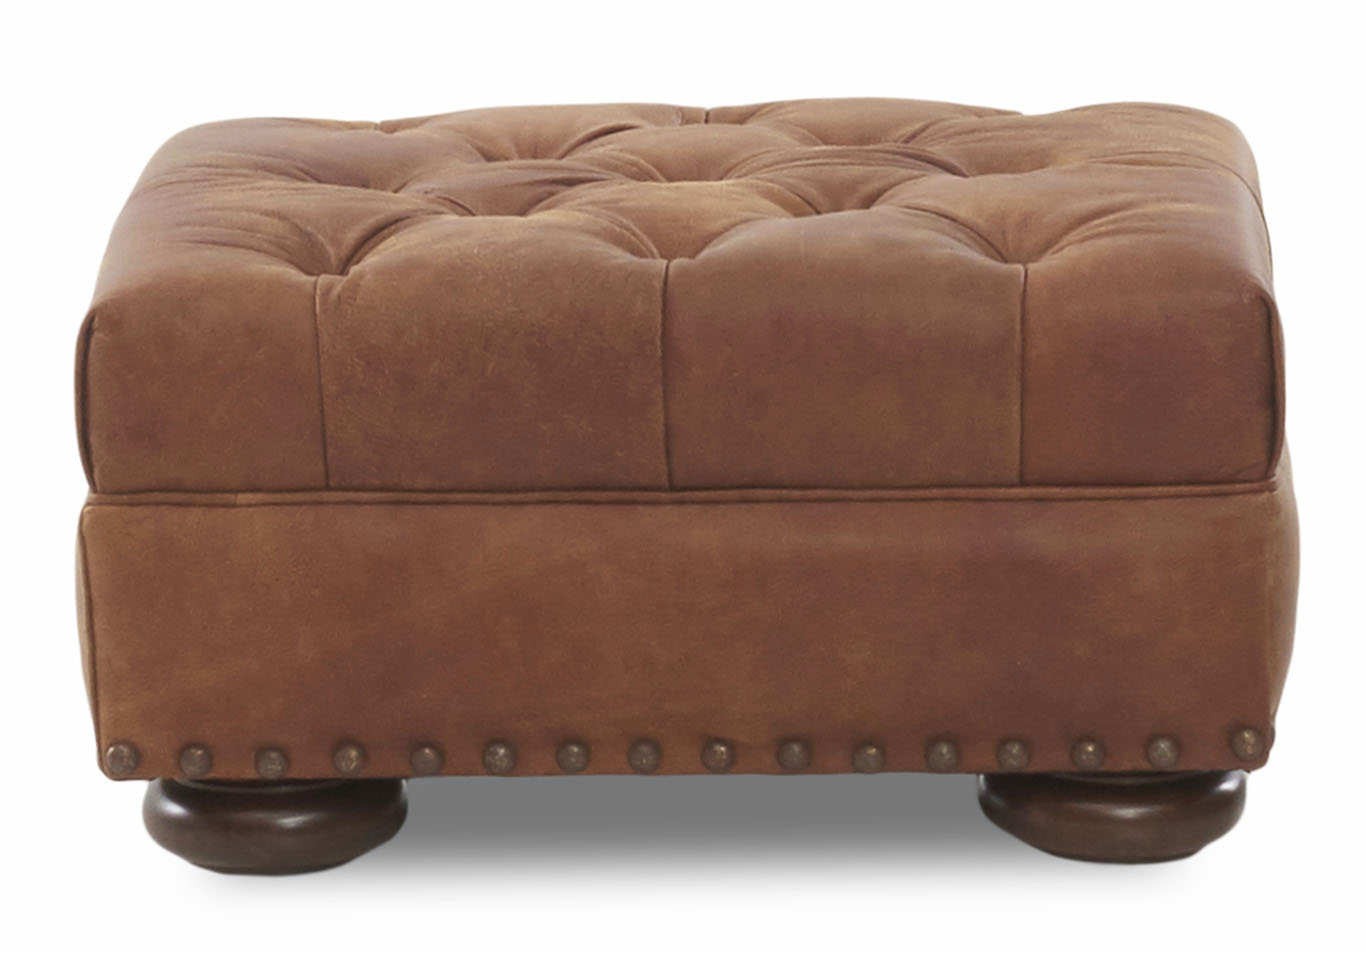 Aspen Stationary Leather Ottoman,Klaussner Home Furnishings